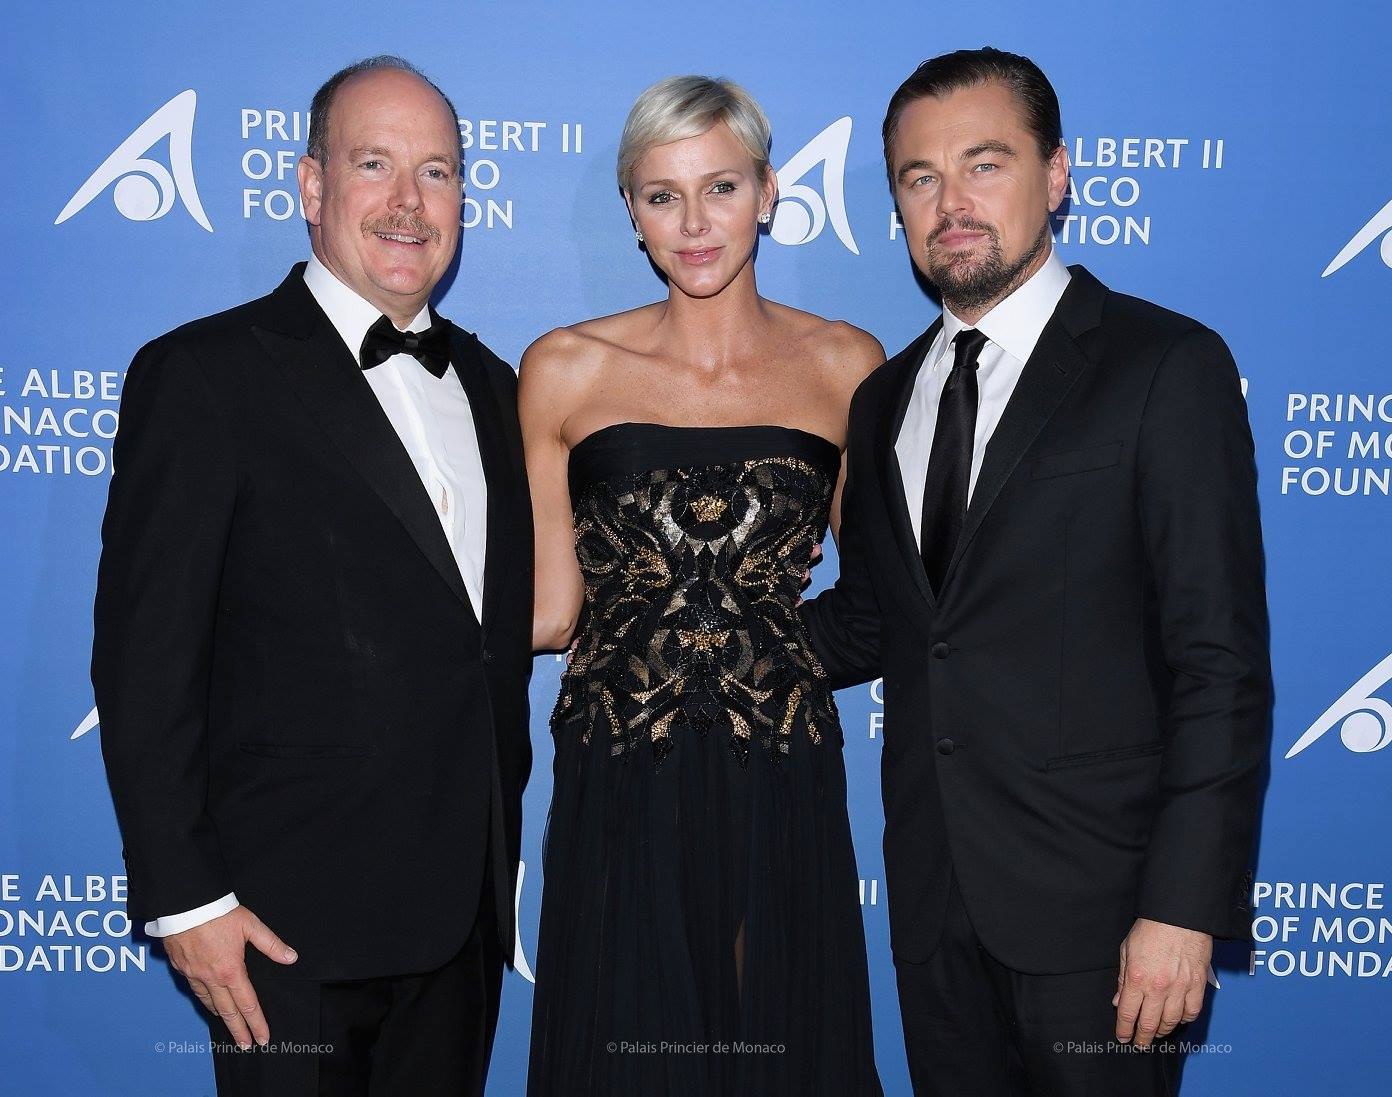 Leonardo DiCaprio, Princess Charlene and Prince Albert II